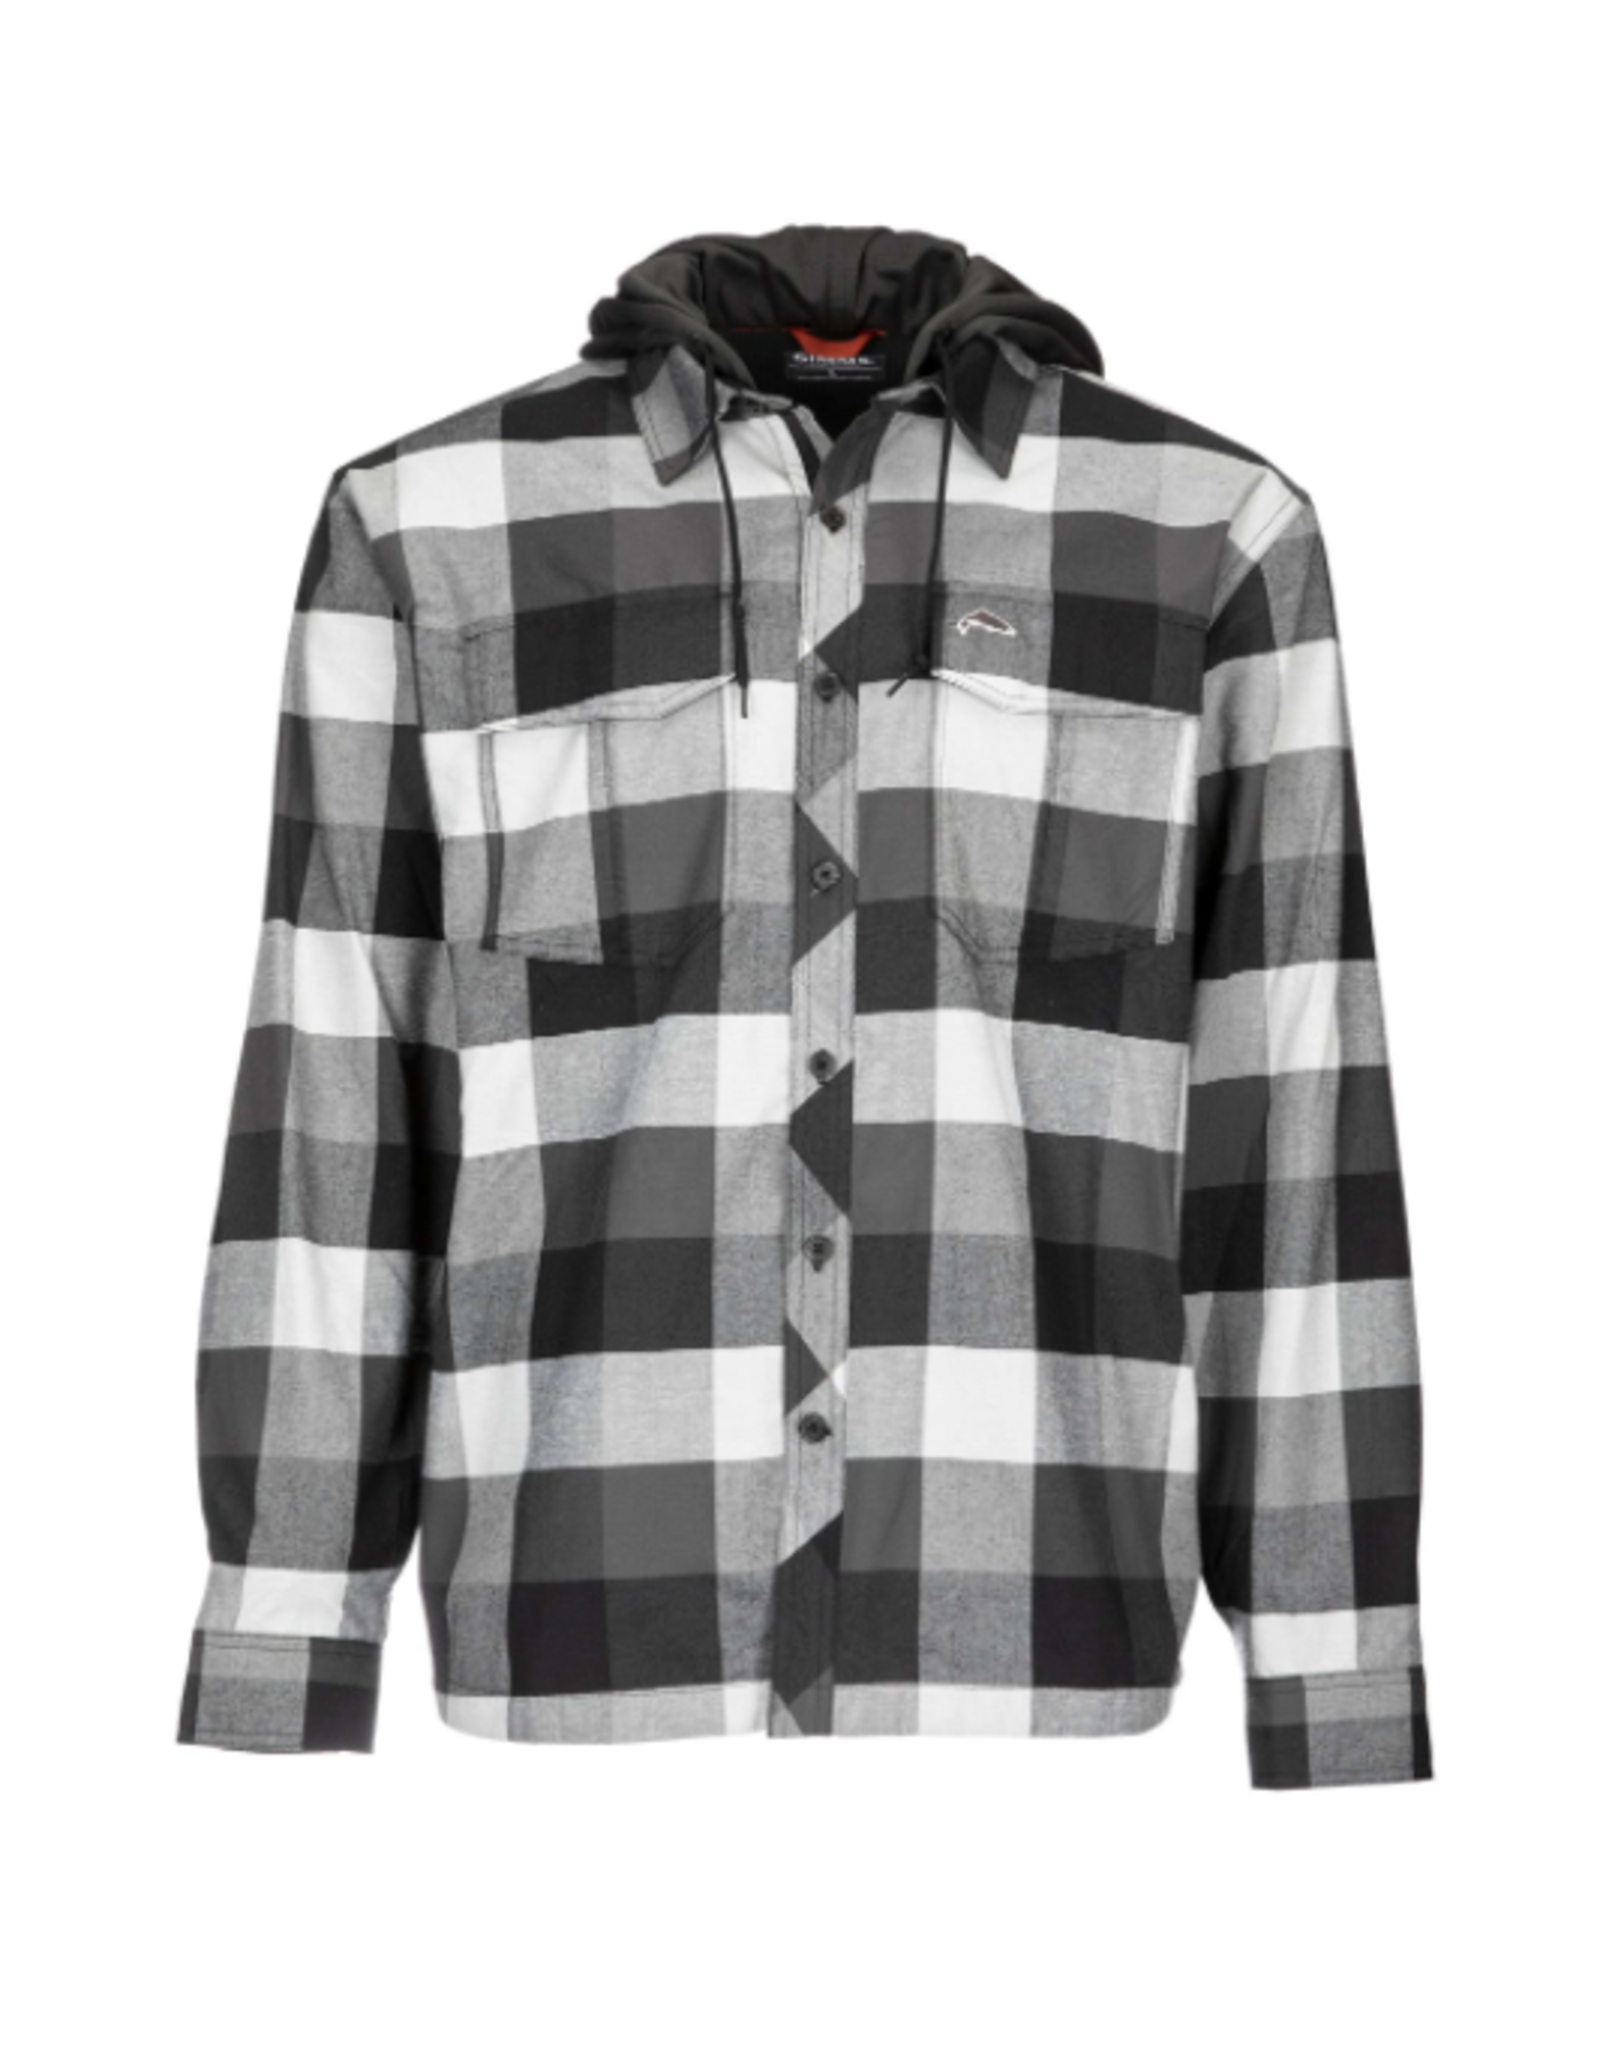 Hooded flannel lined with waffle fleece